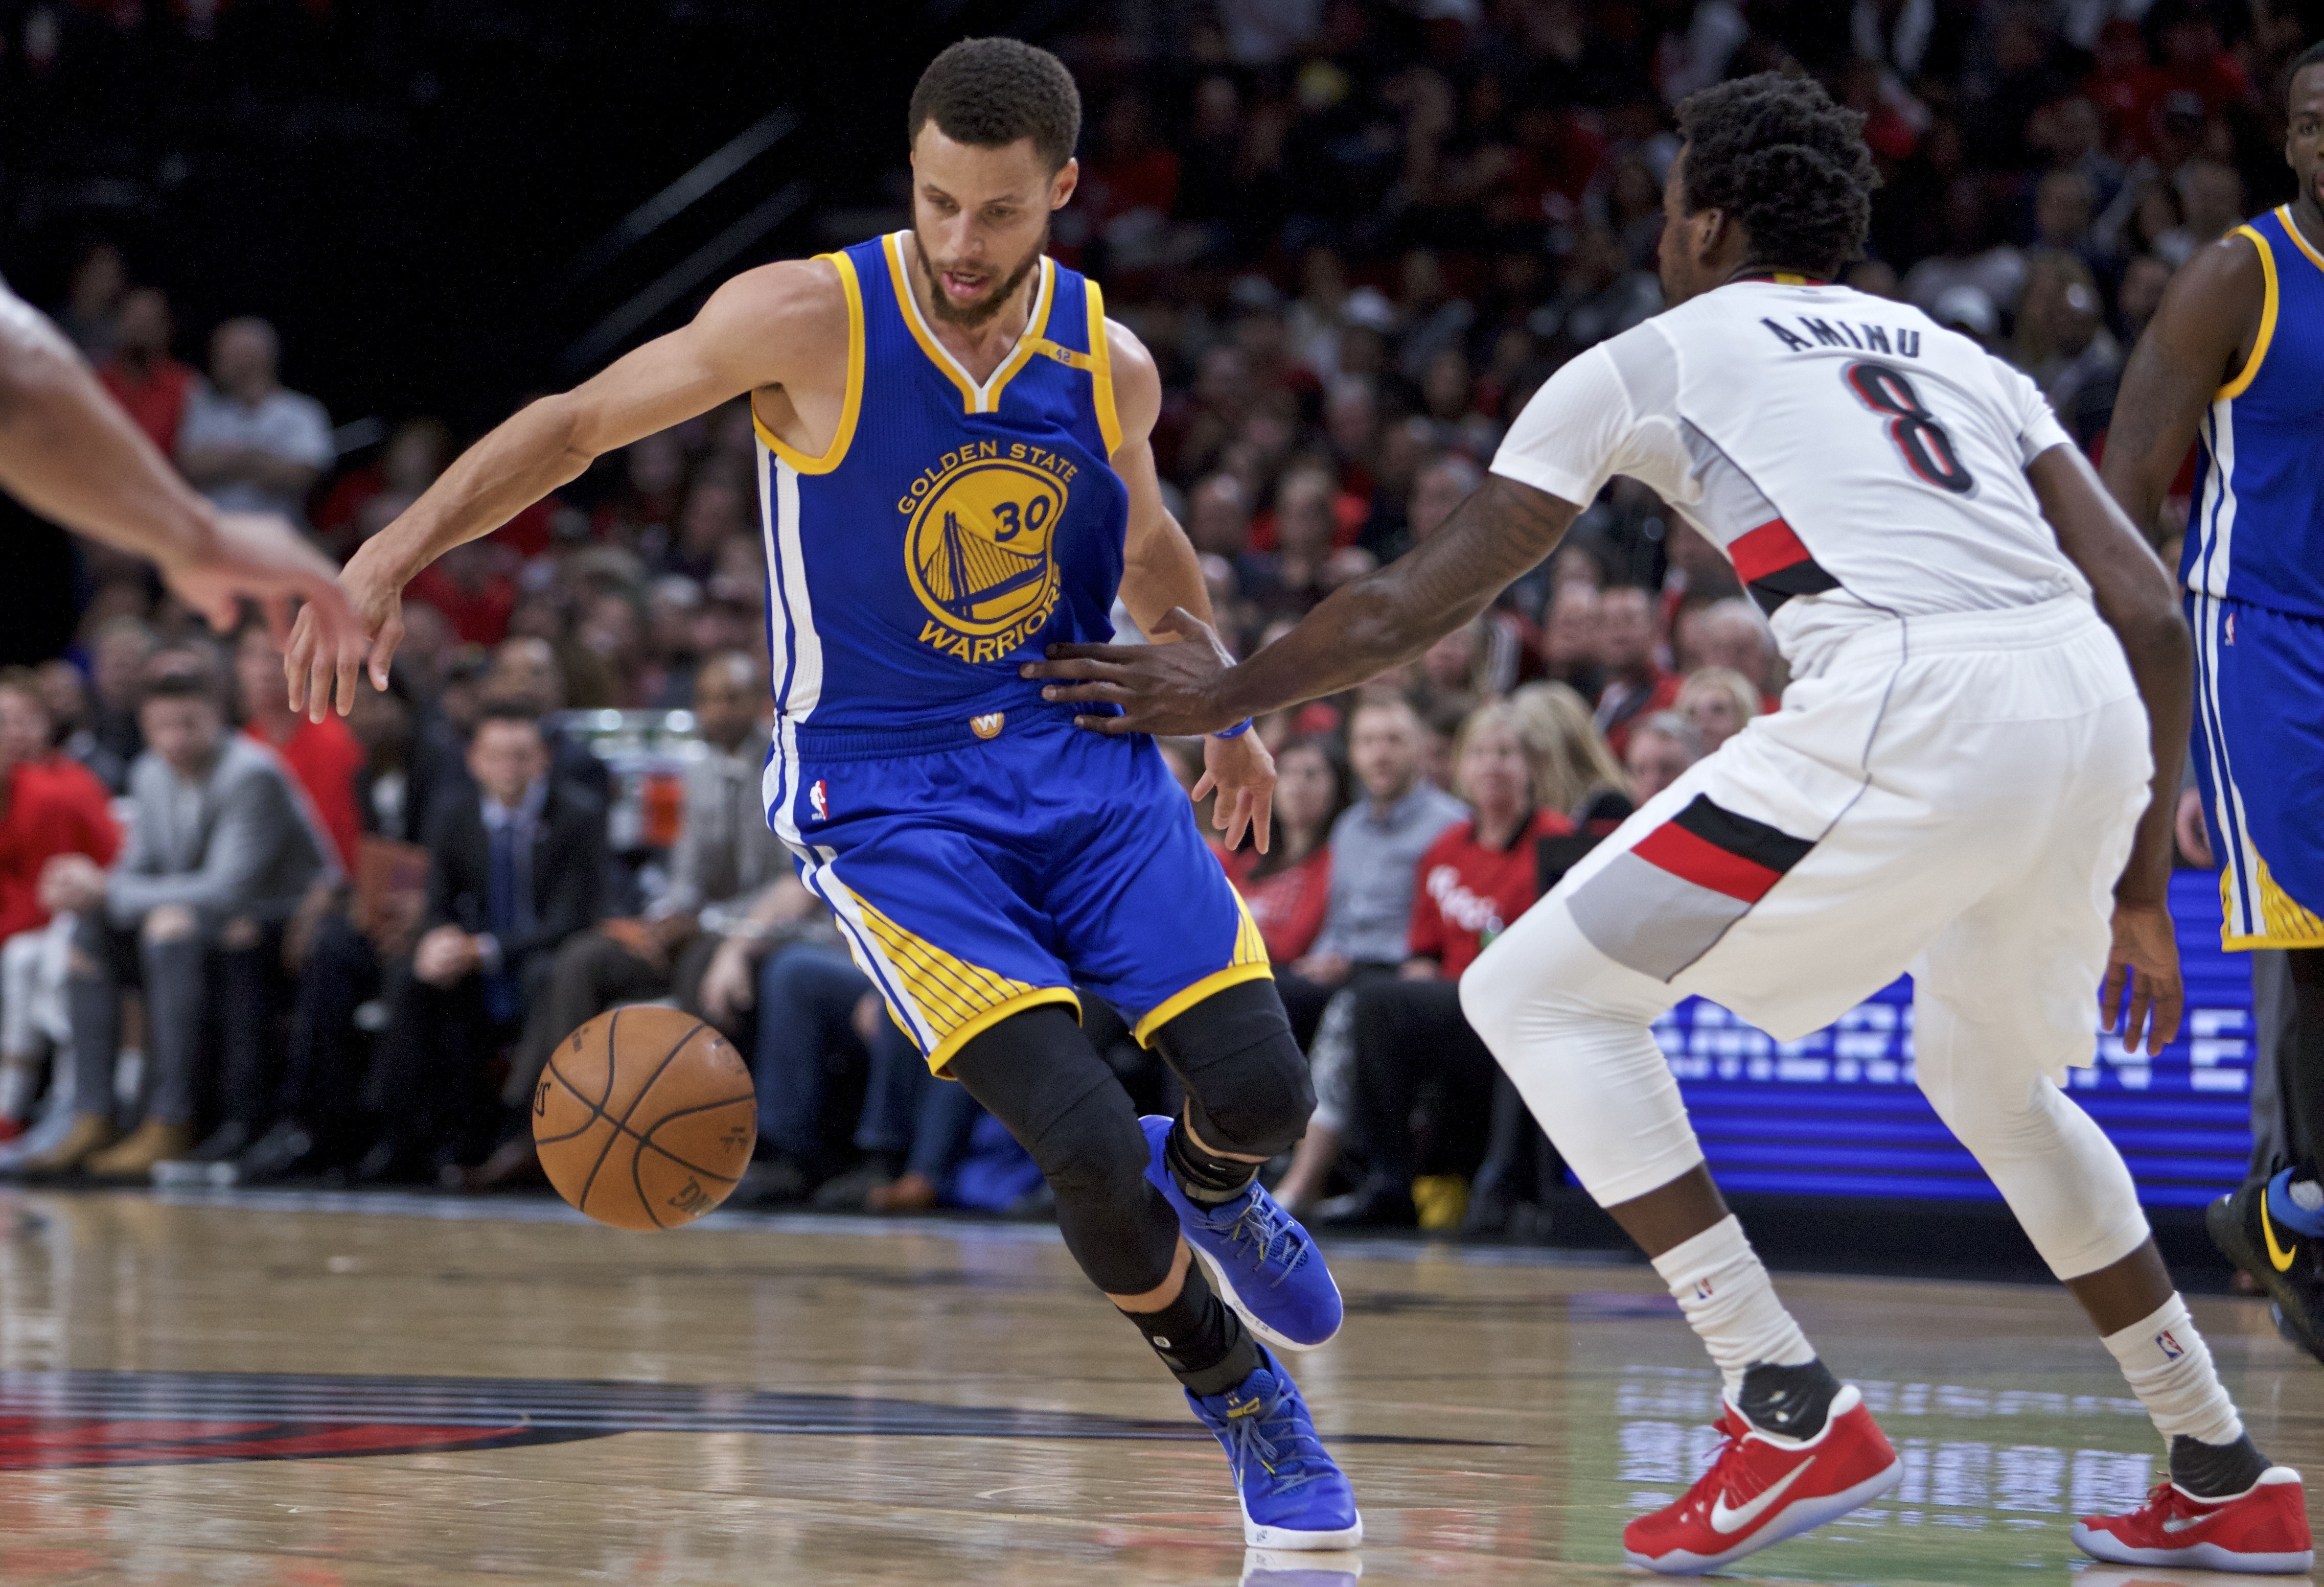 Golden State Warriors guard Stephen Curry (left) dribbles around his back past Portland Trail Blazers forward Al-Farouq Aminu during the first half of Game 4 of their NBA basketball first-round playoff series, Monday, April 24, in Portland, Ore. (AP Photo/Craig Mitchelldyer)